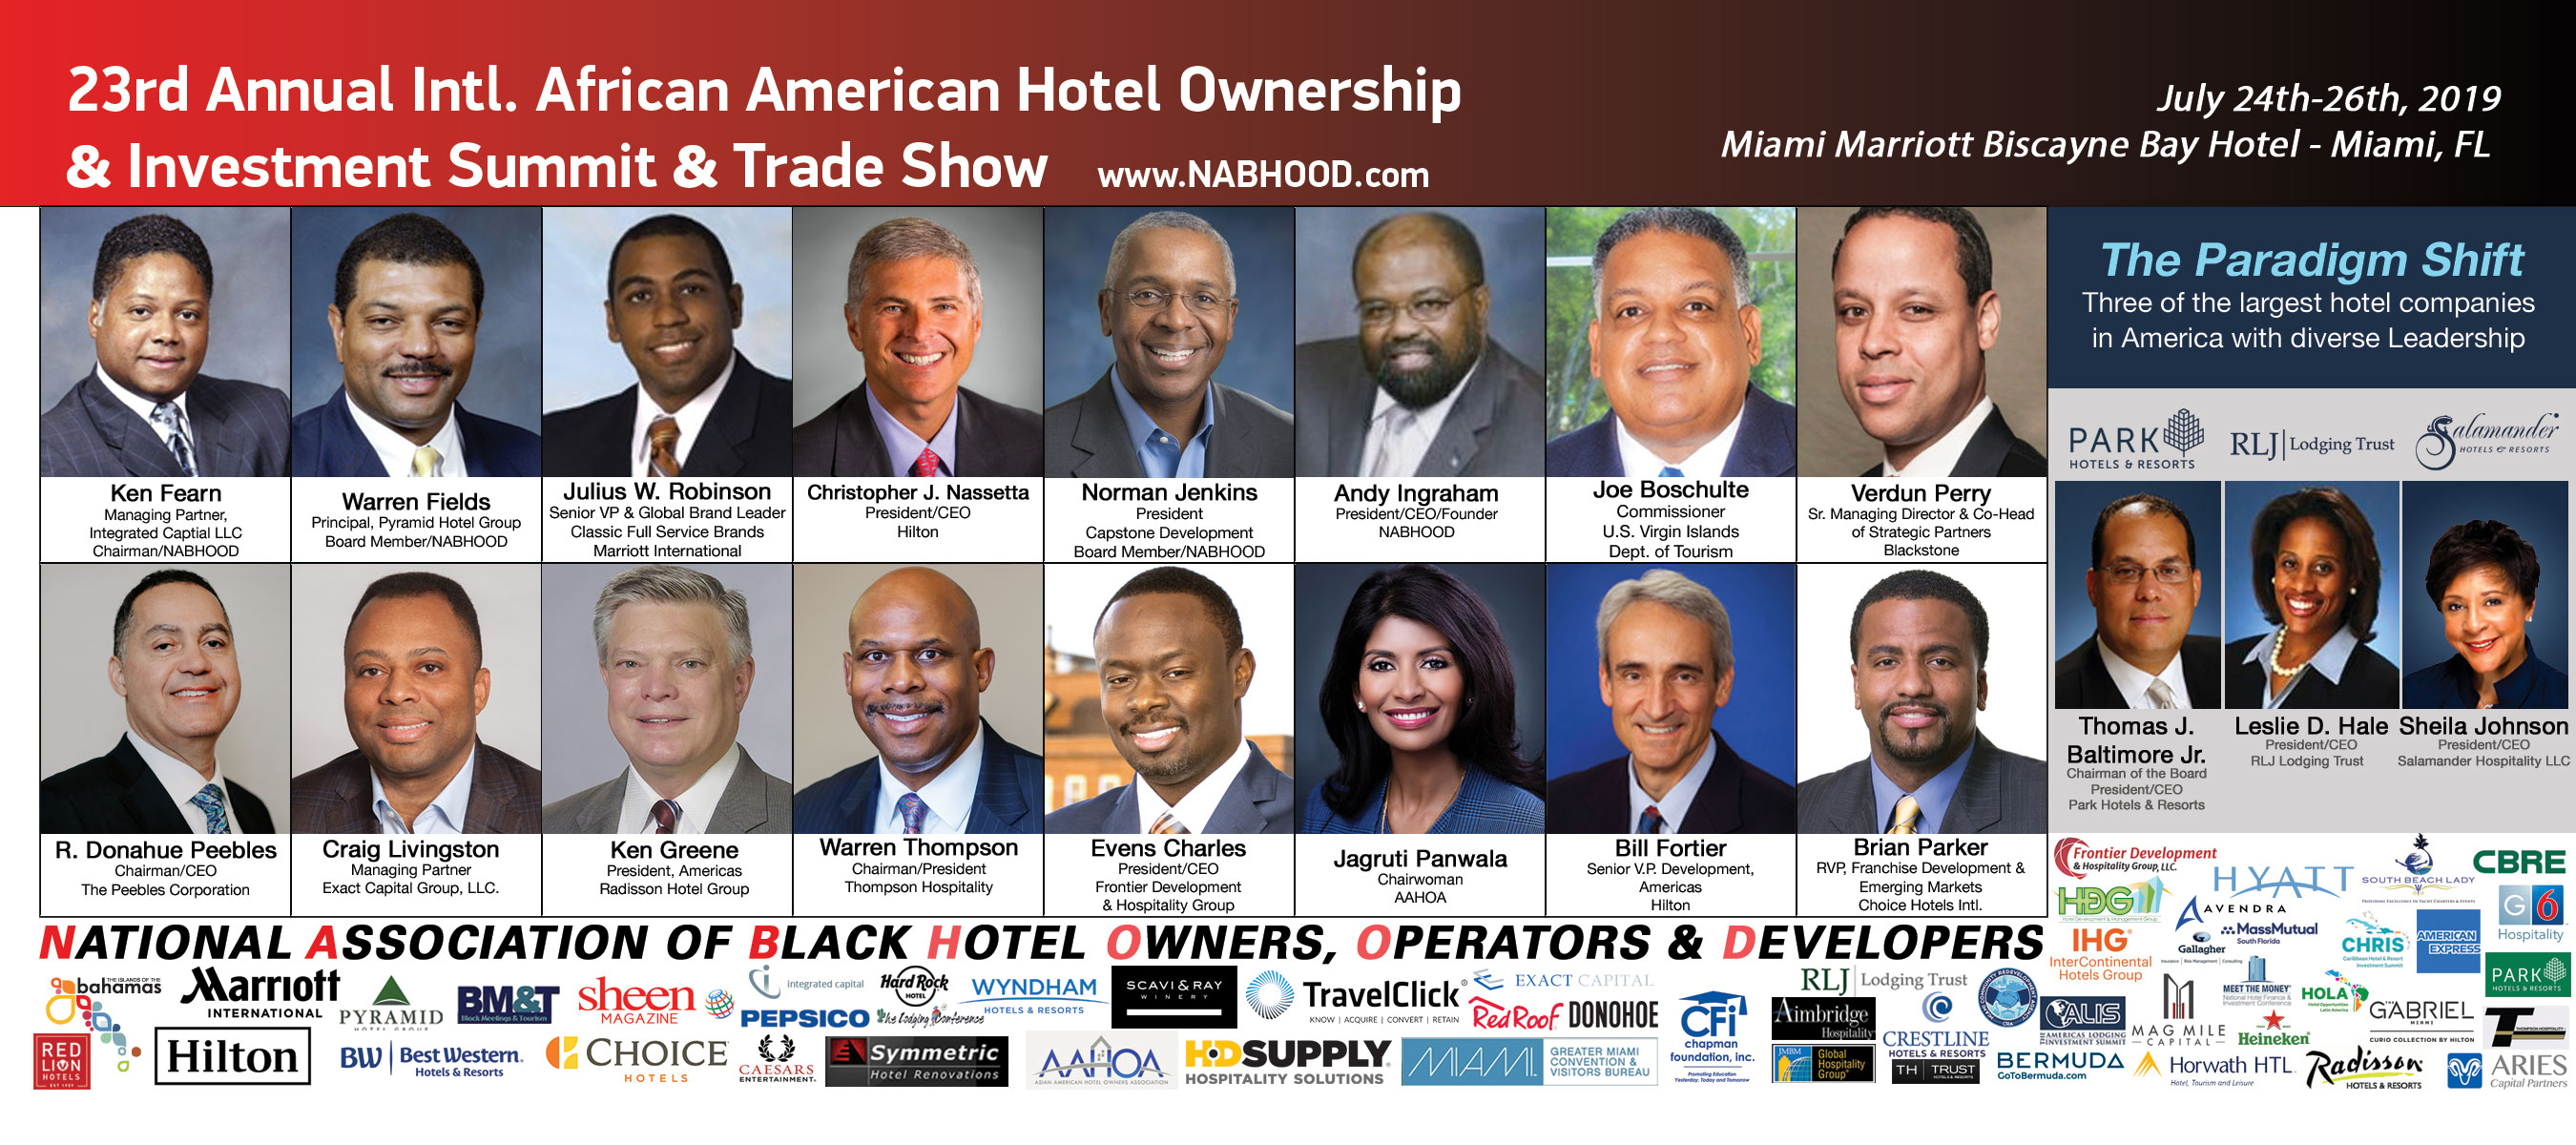 23rd Annual International African American Hotel Ownership & Investment Summit & Trade Show